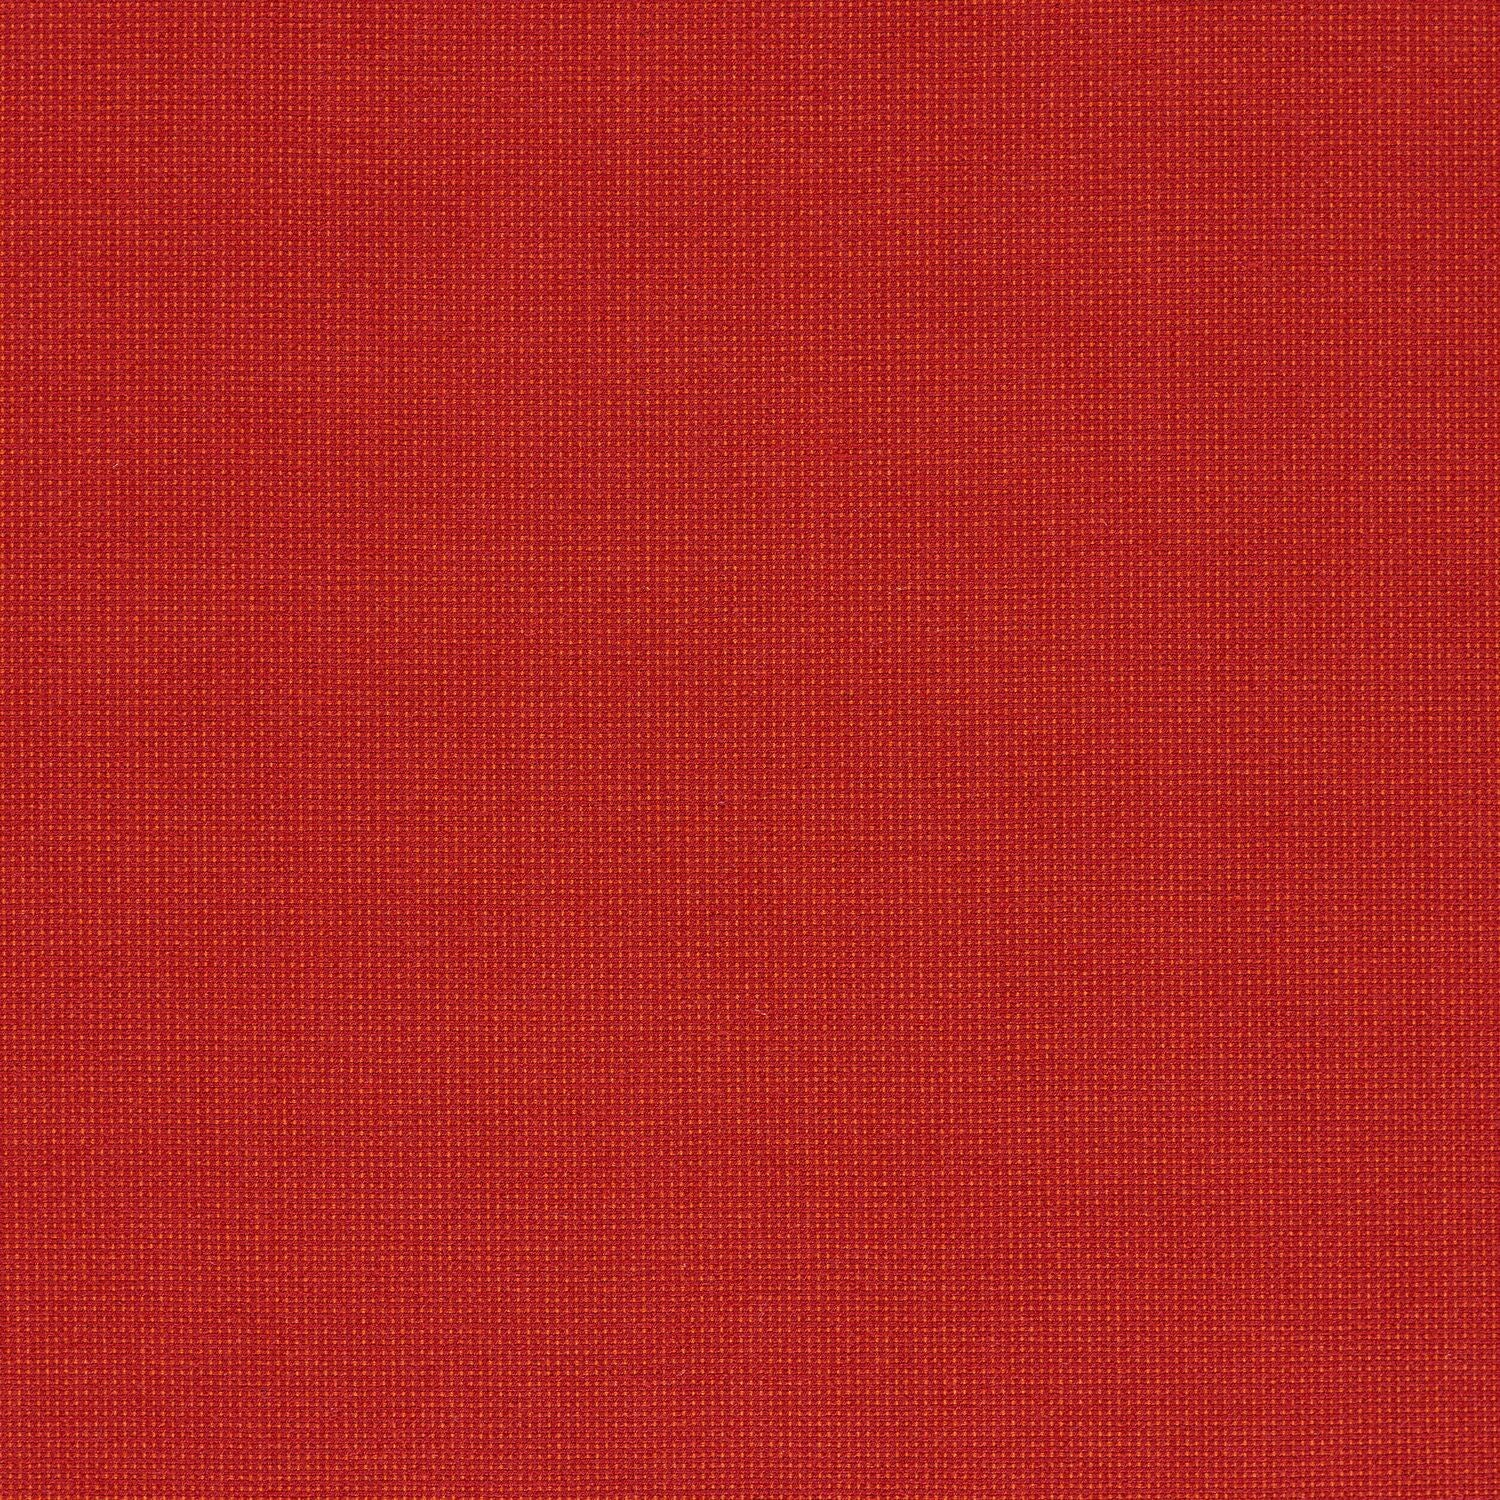 Elastic Wool - Ruby - 4067 - 08